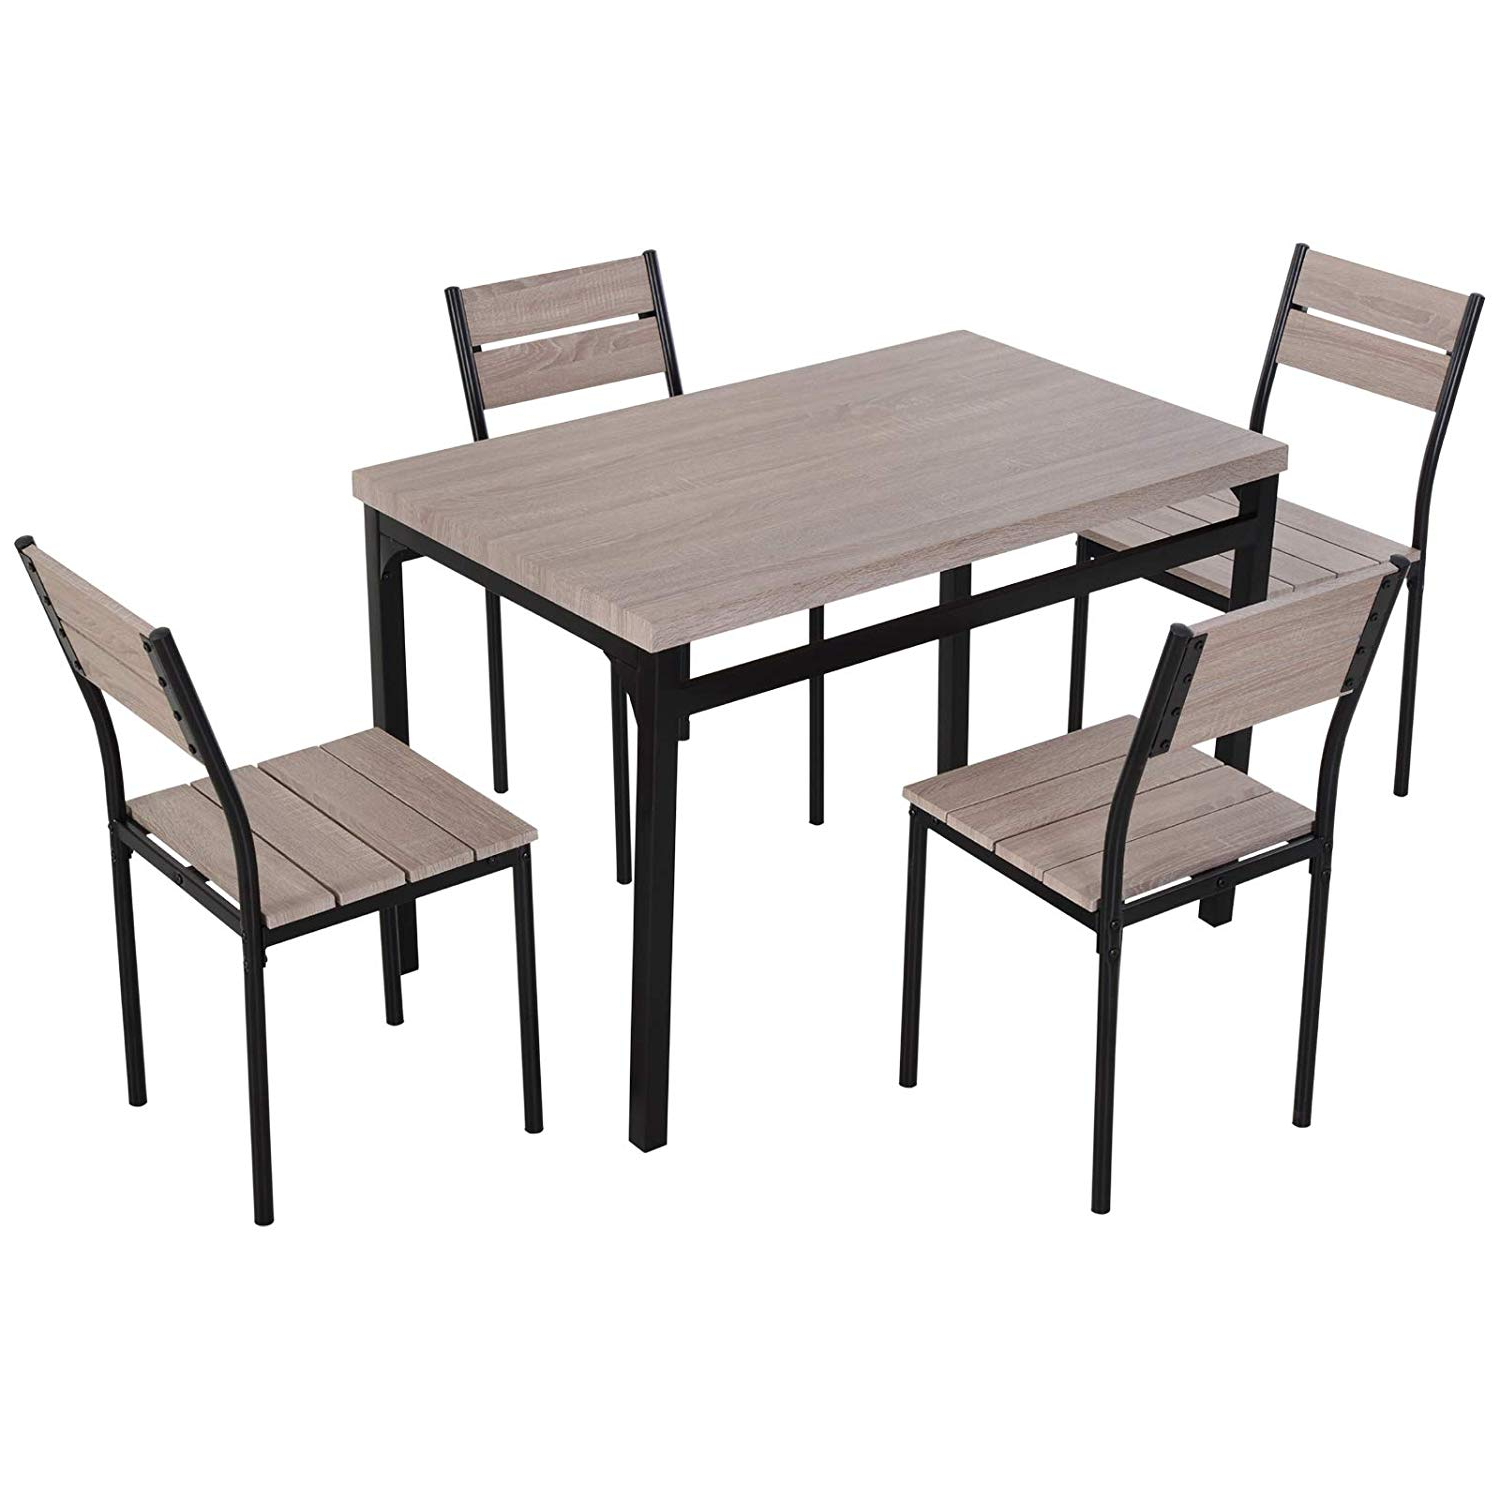 Most Current Transitional 3 Piece Drop Leaf Casual Dining Tables Set Throughout Homcom 5 Piece Transitional Style Dining Room Table Set With Chairs (View 19 of 25)